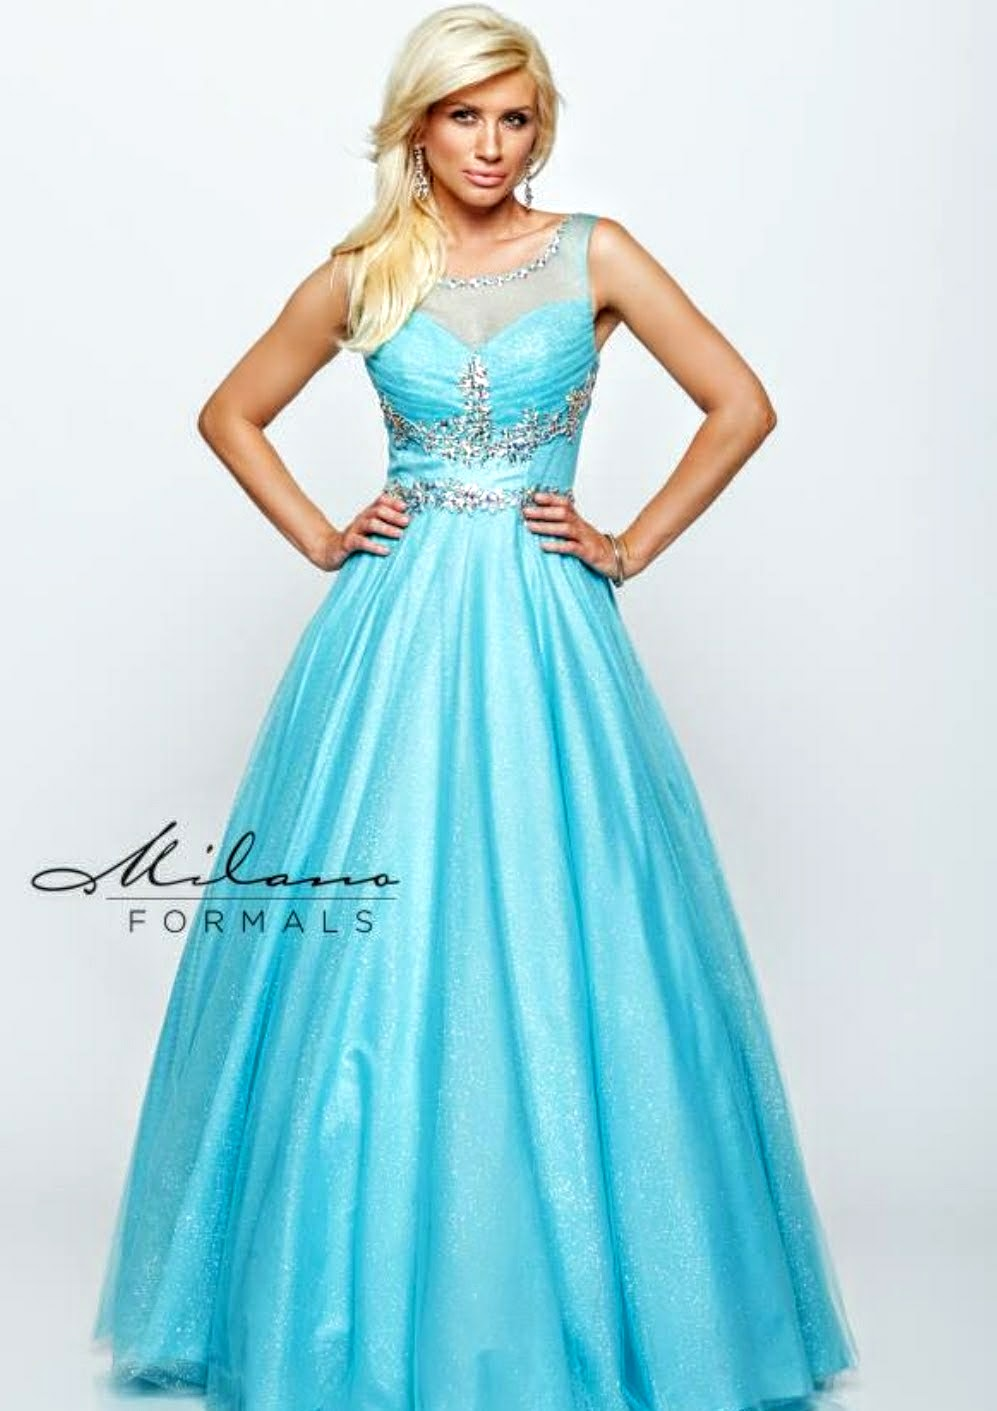 Dress by the Best: The Home Of Your Next Dress! Prom, Pageant, Evening